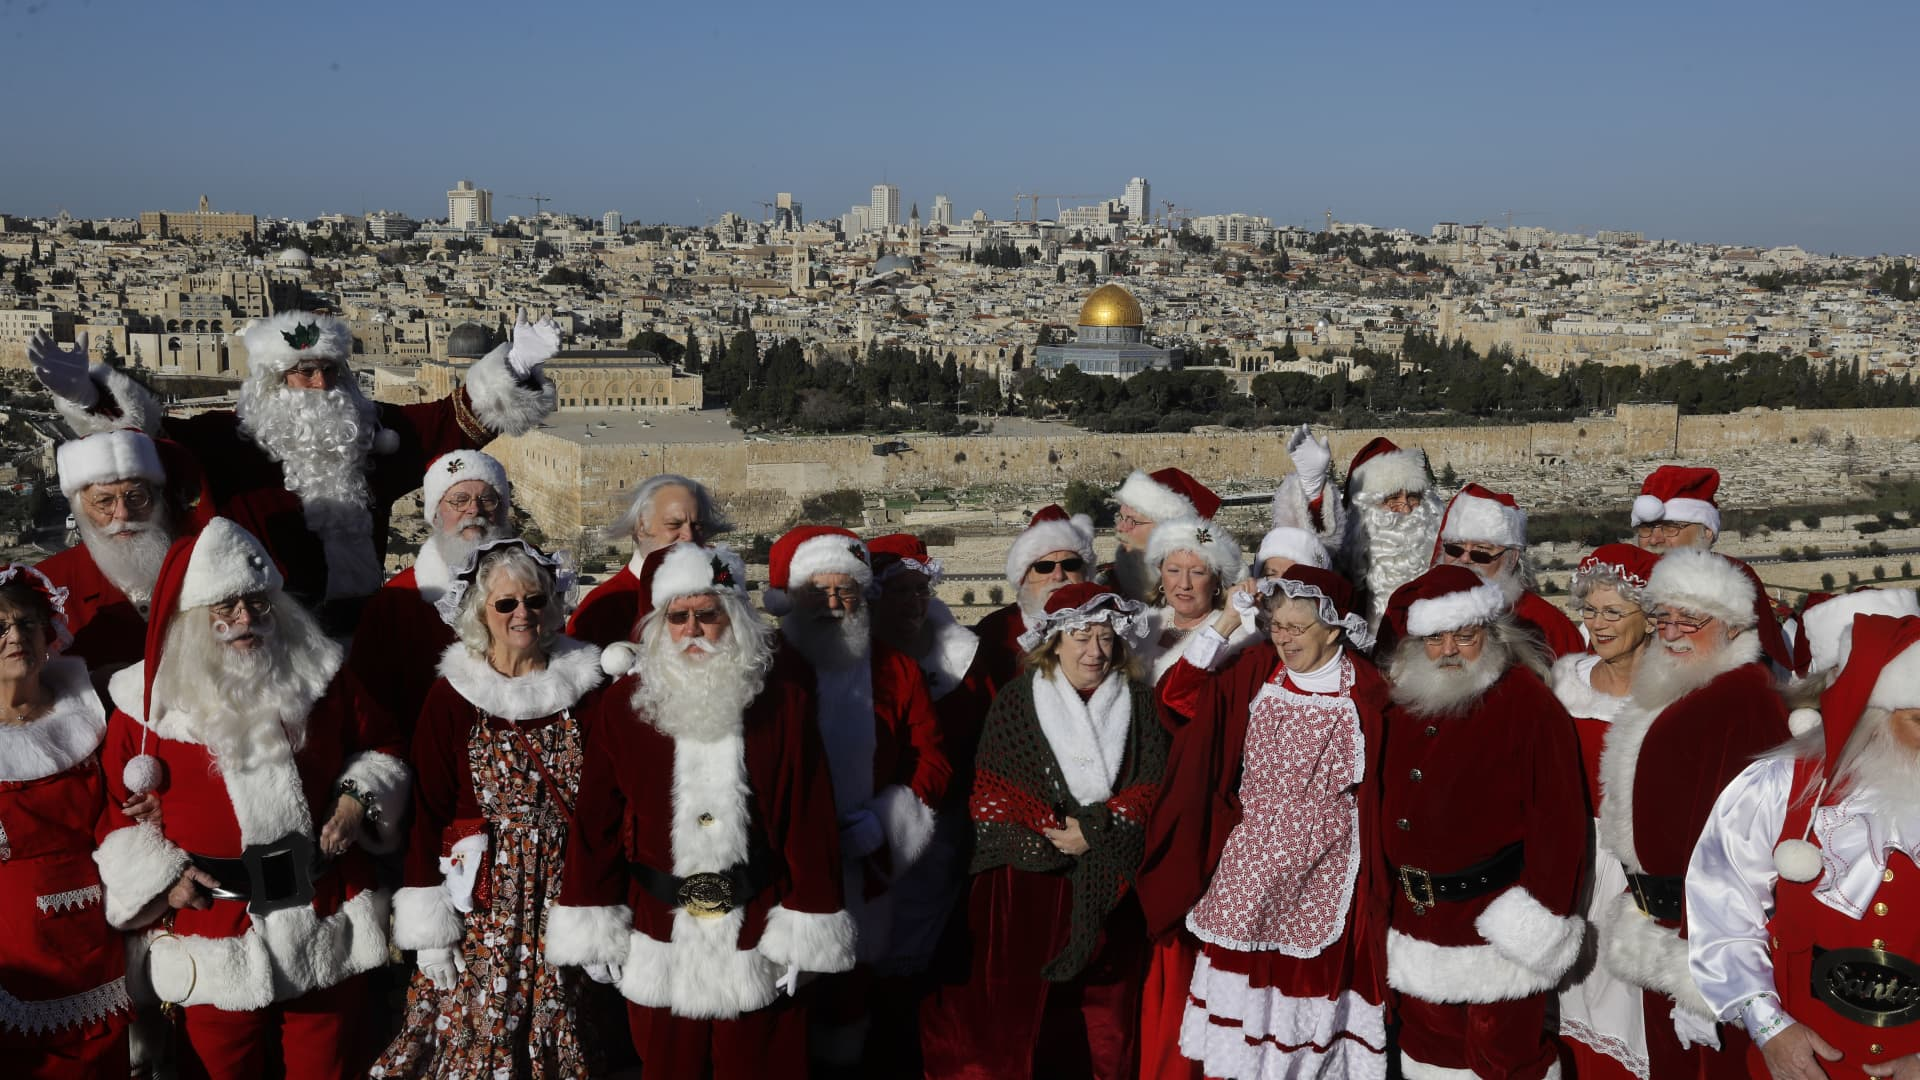 A group people dressed as Santa Claus visit the Mount of Olives overlooking Jerusalem's Old City on Jan. 7, 2020.